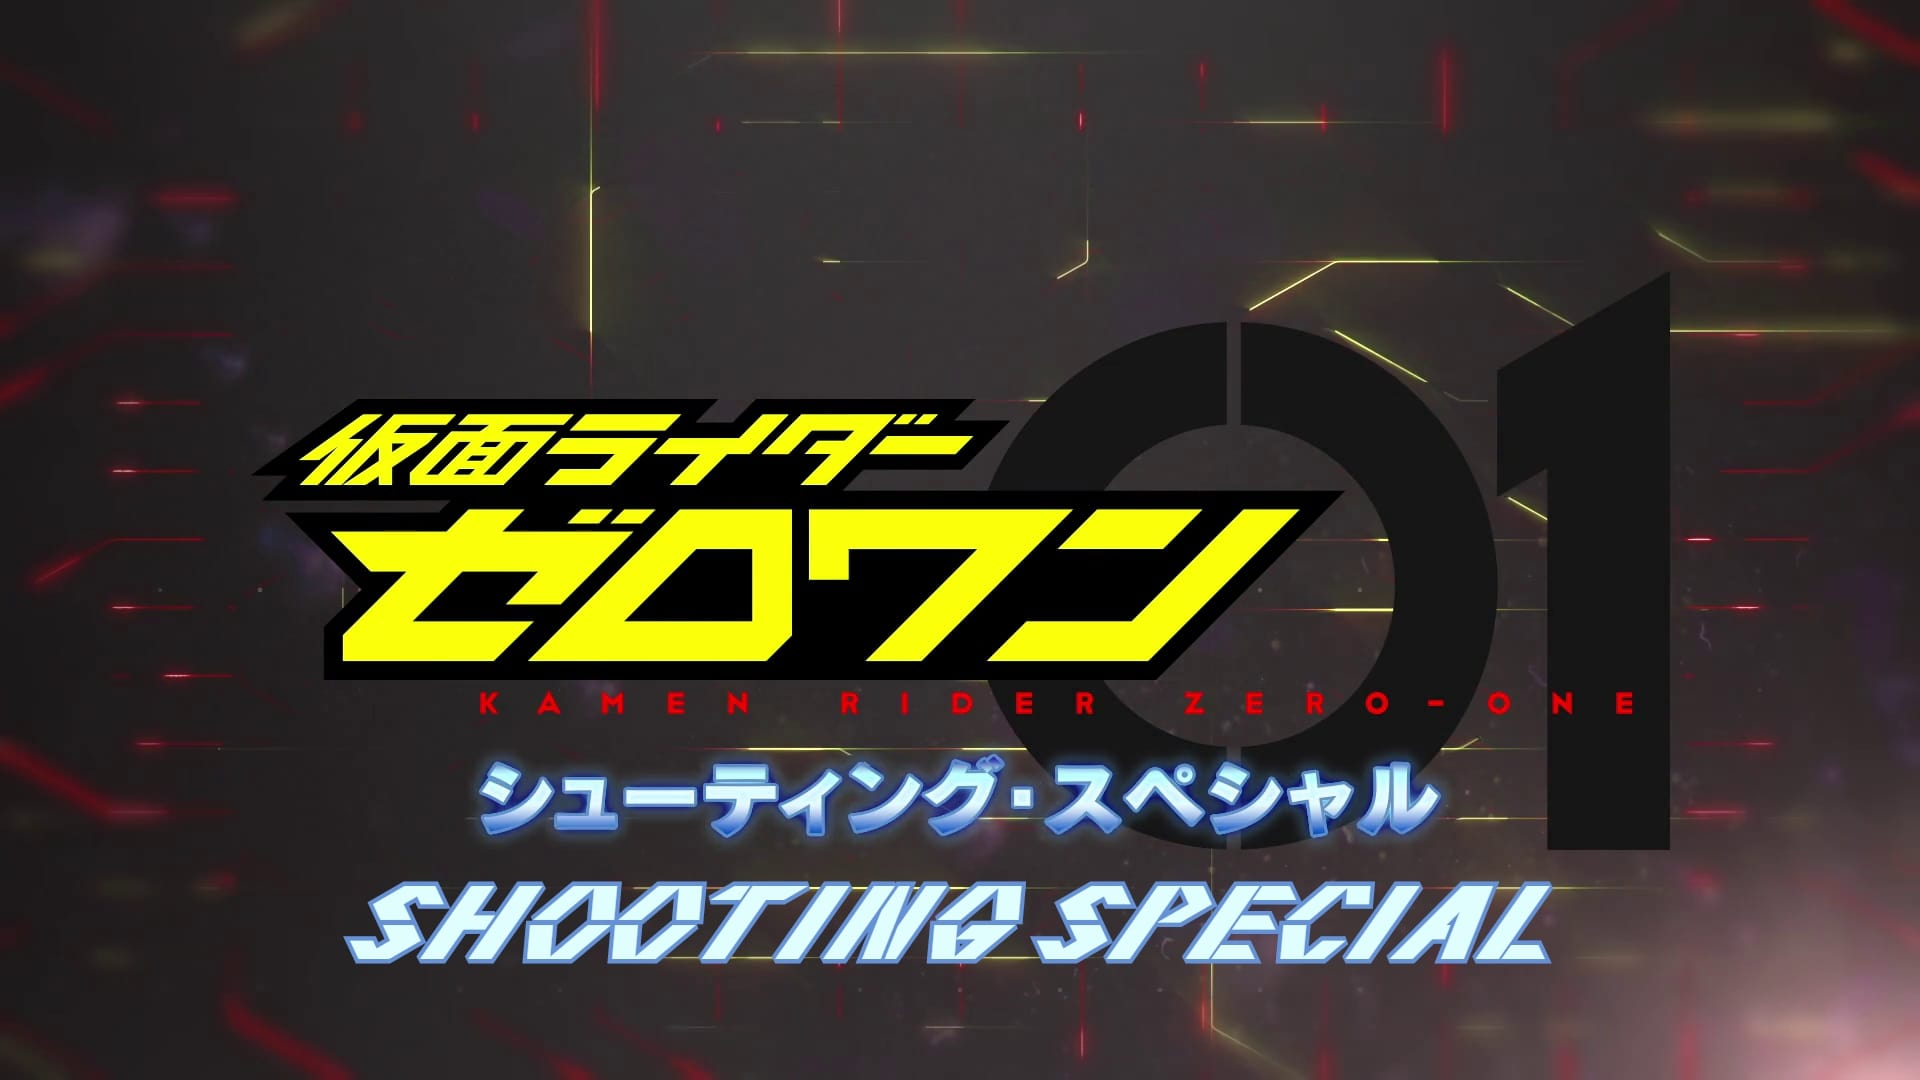 Kamen Rider Season 0 :Episode 21  Kamen Rider Zero-One: Shooting Special